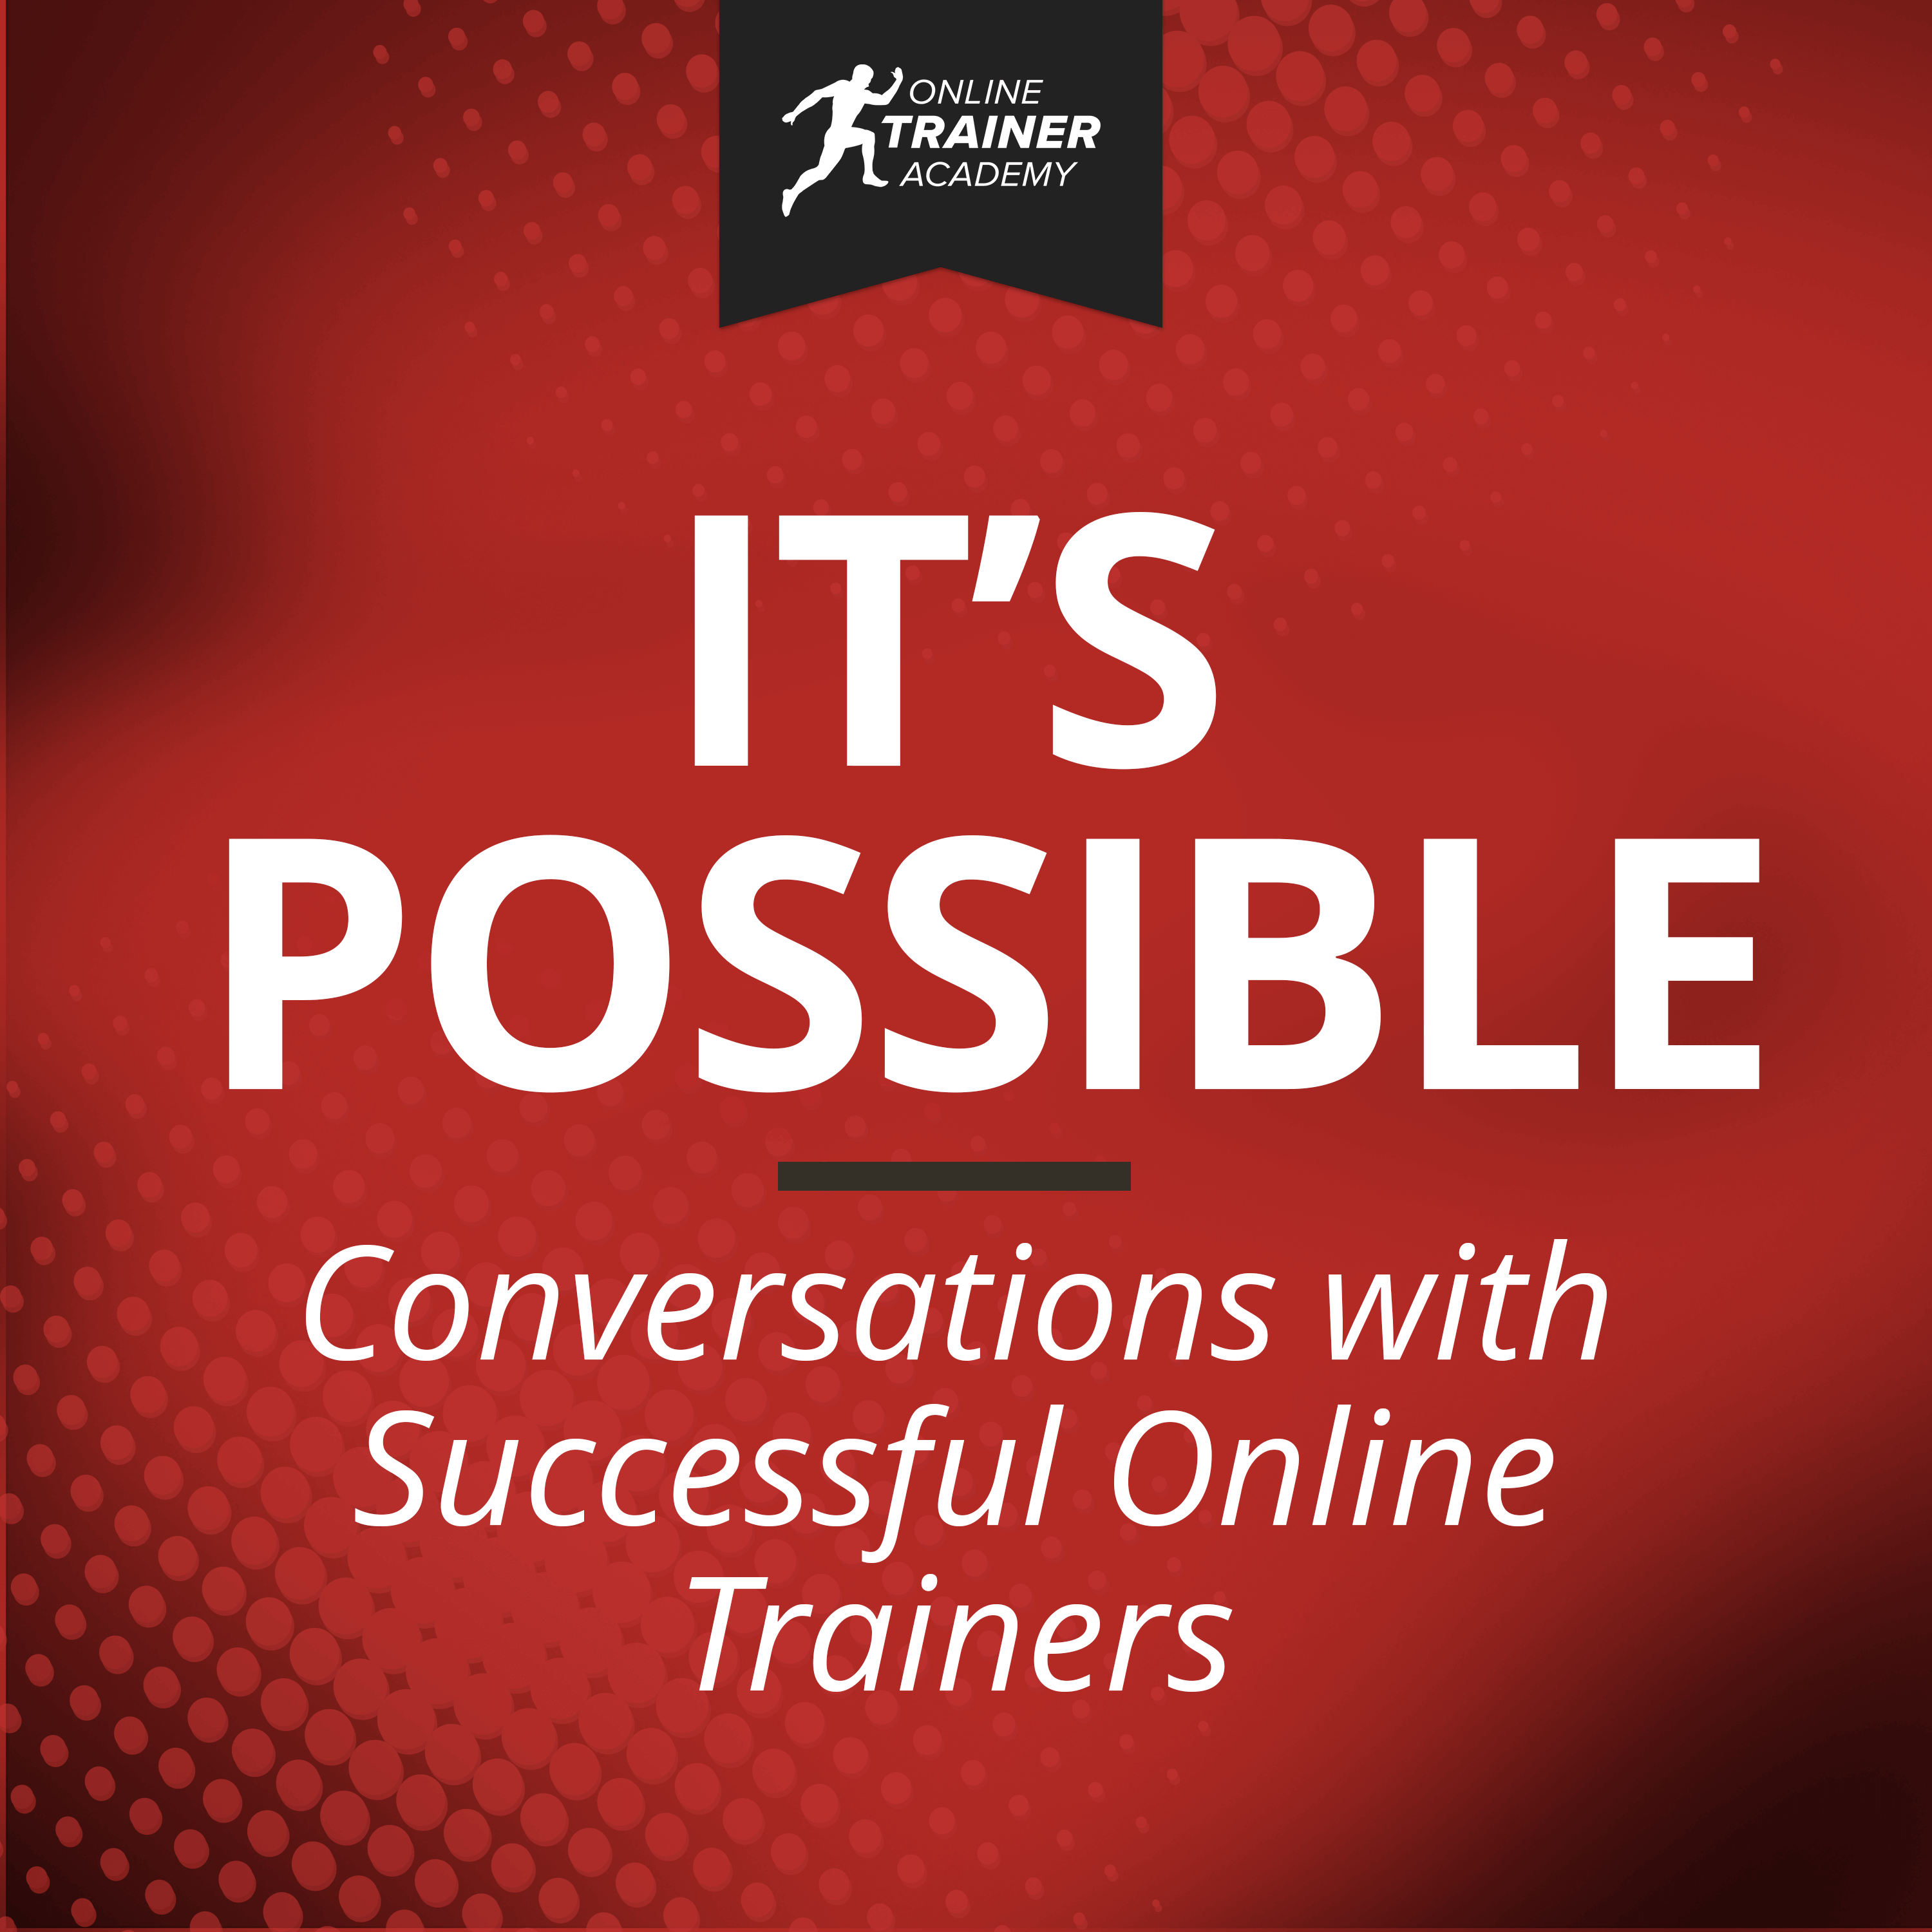 Ep 11: Is the Online Fitness Industry Saturated with Jonathan Goodman